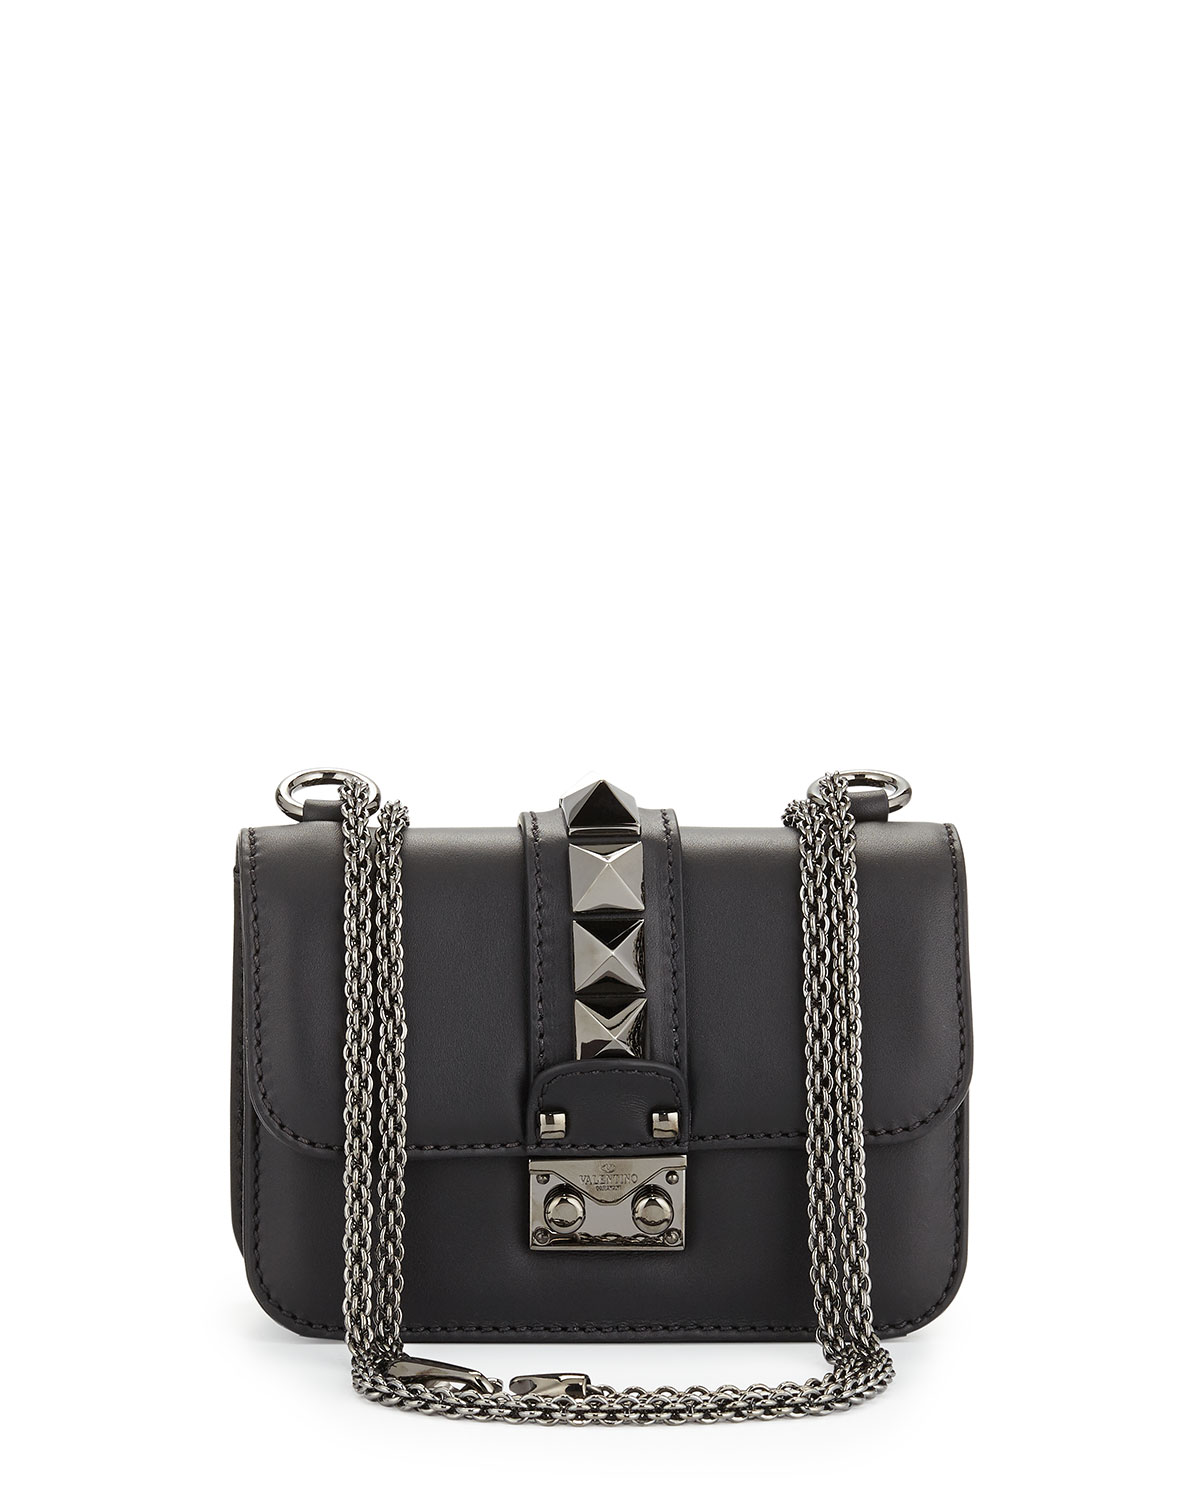 Red Valentino Lock Half-Flap Small Shoulder Bag, Black, Size: S